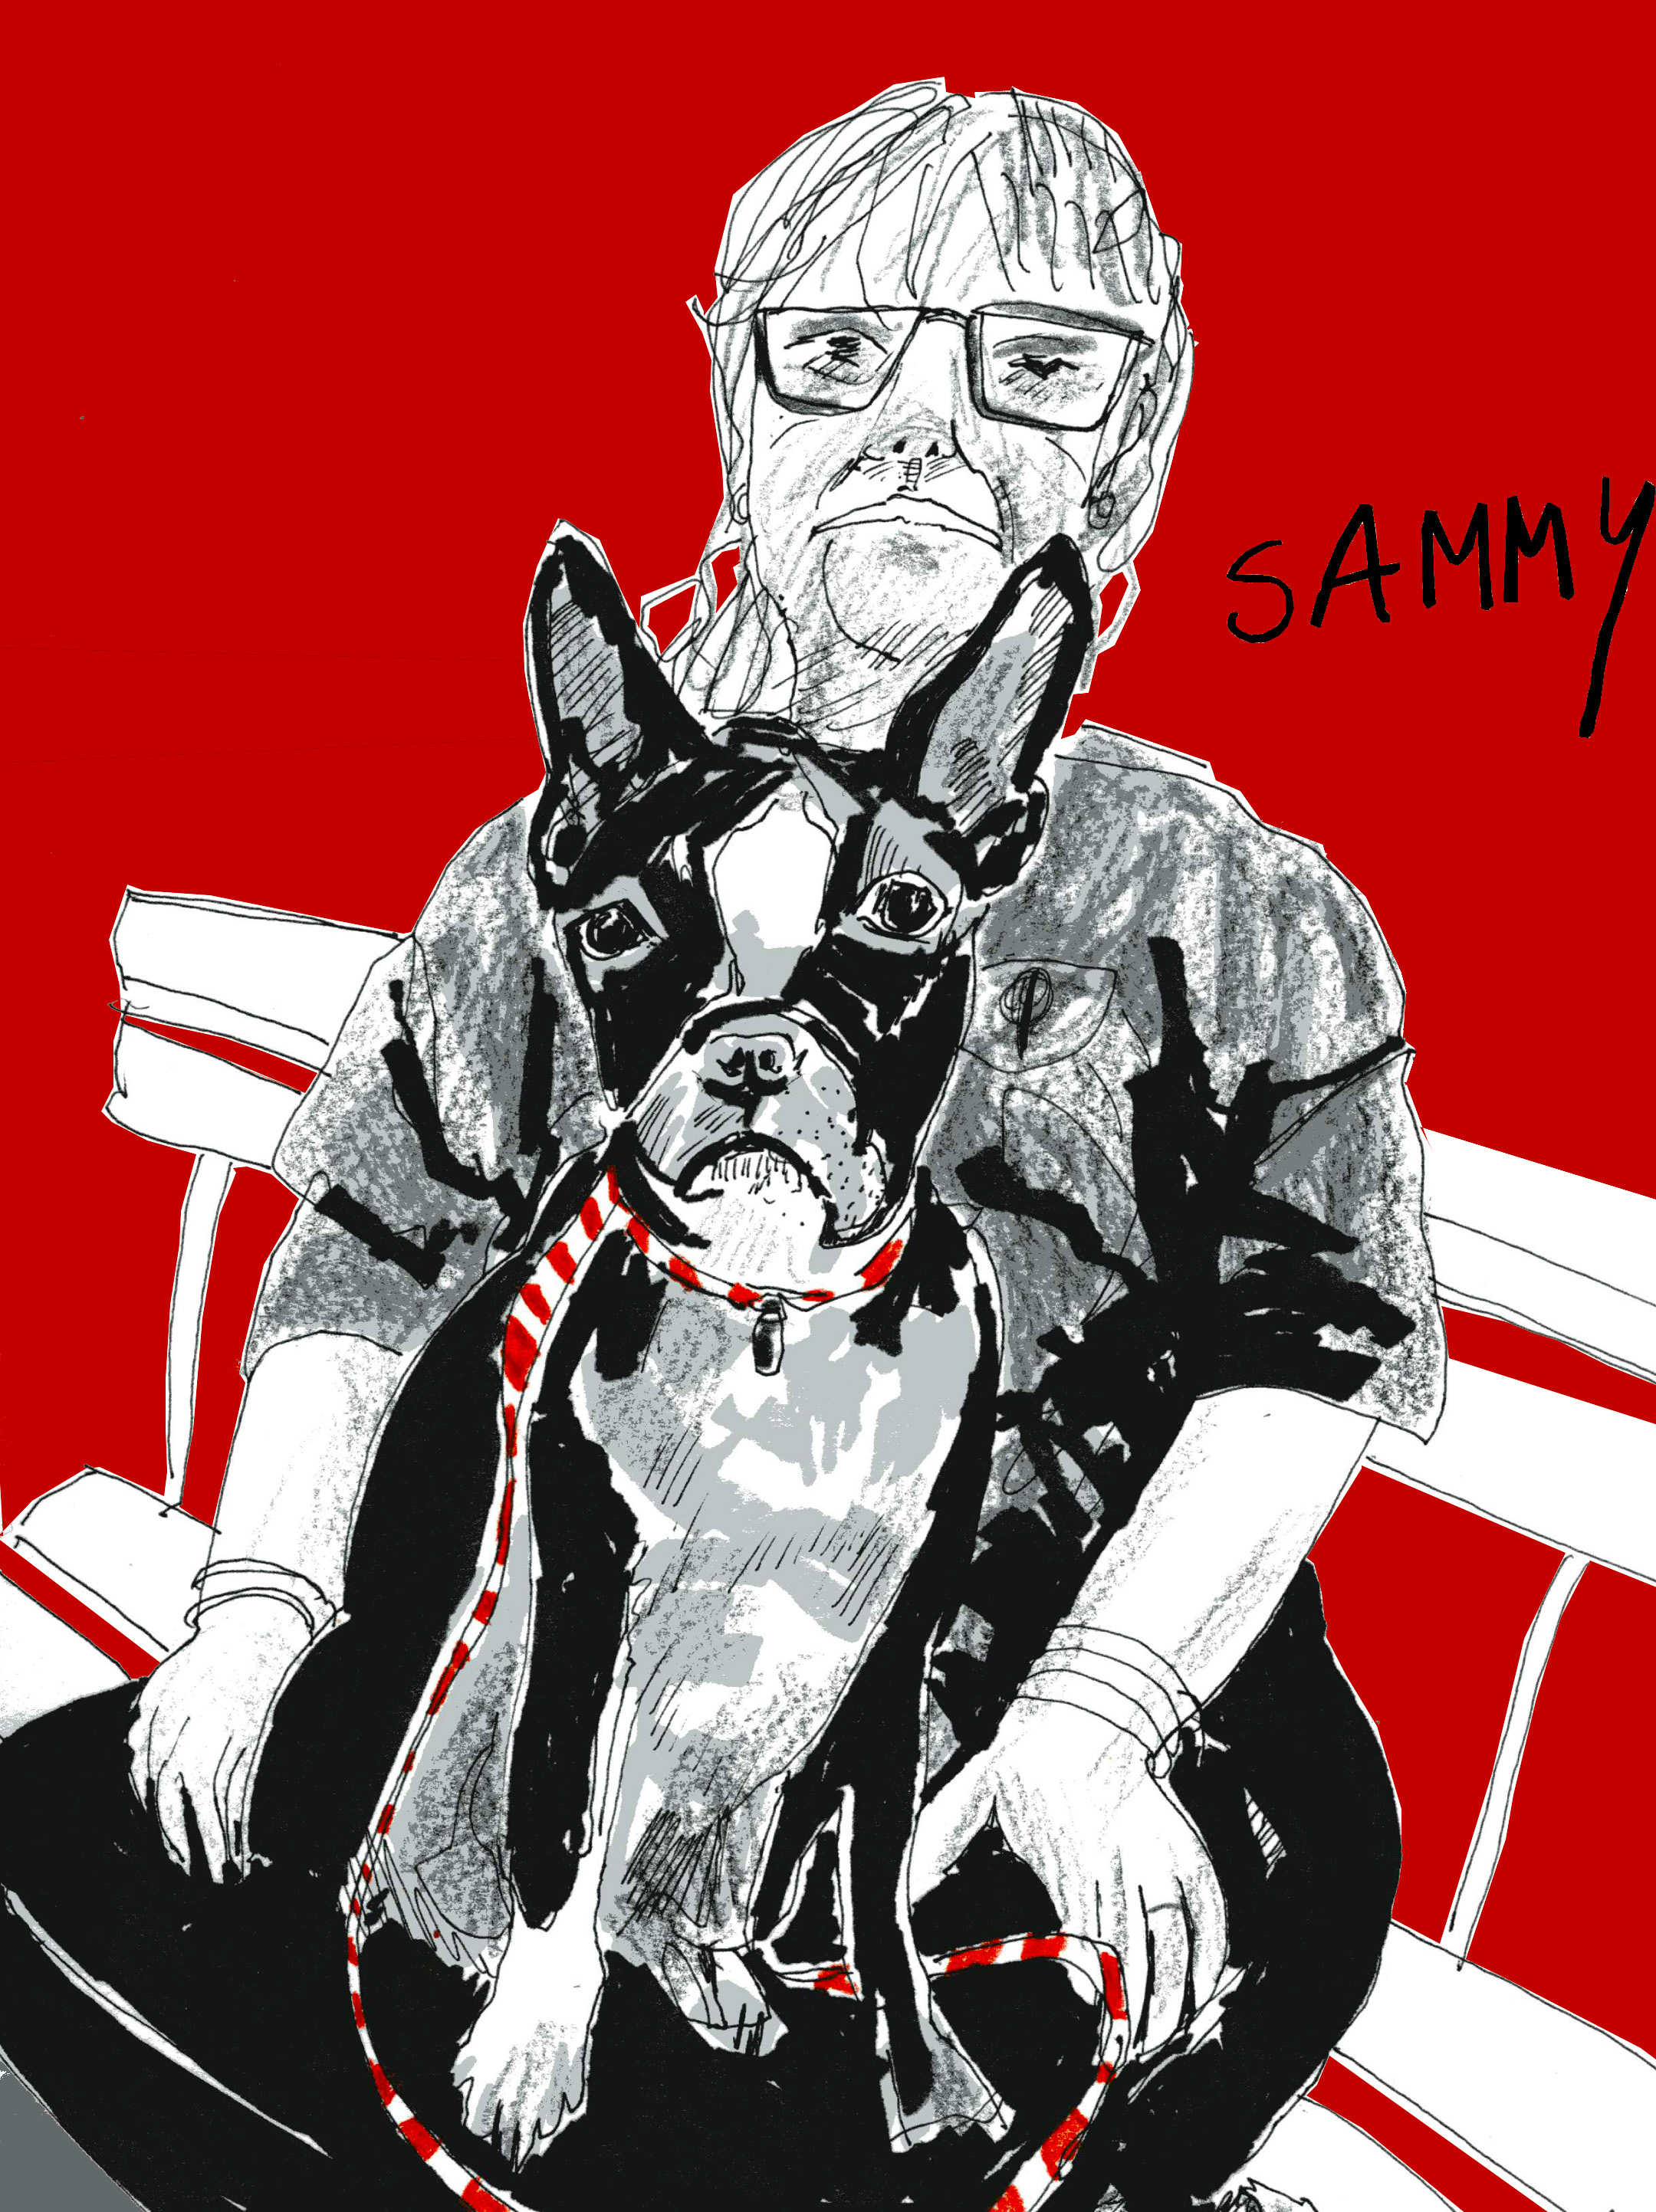 'Sammy' by Barbara